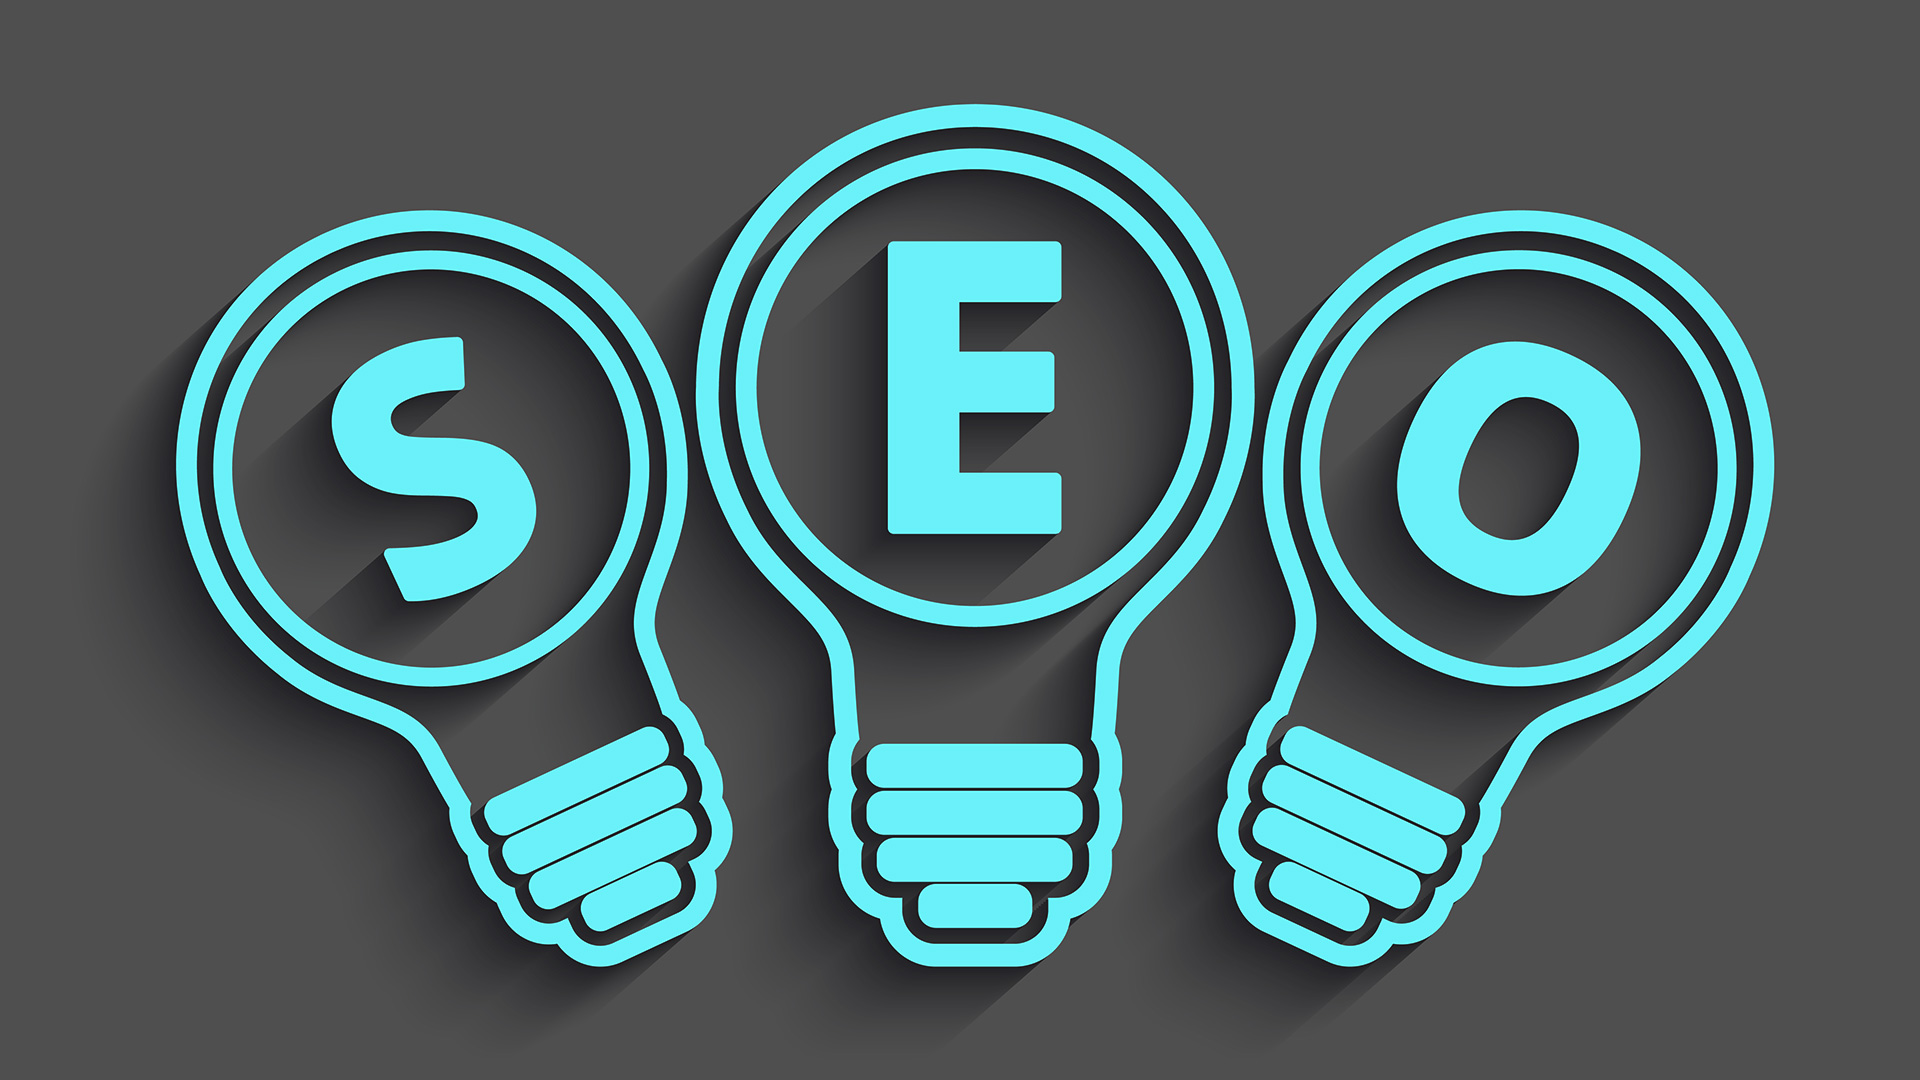 Call Now on 9891251256 We do SEO services in Bangalore and Pan India. SEO in UP, Bihar and Jharkhand market is also required a lot. People generally don't get that much of right guidance in that market. Website Expert is leading in Search Engine Optimization. Auto SEO can be done by professionals. Website Expert understand the requirements of end customer in SEO.